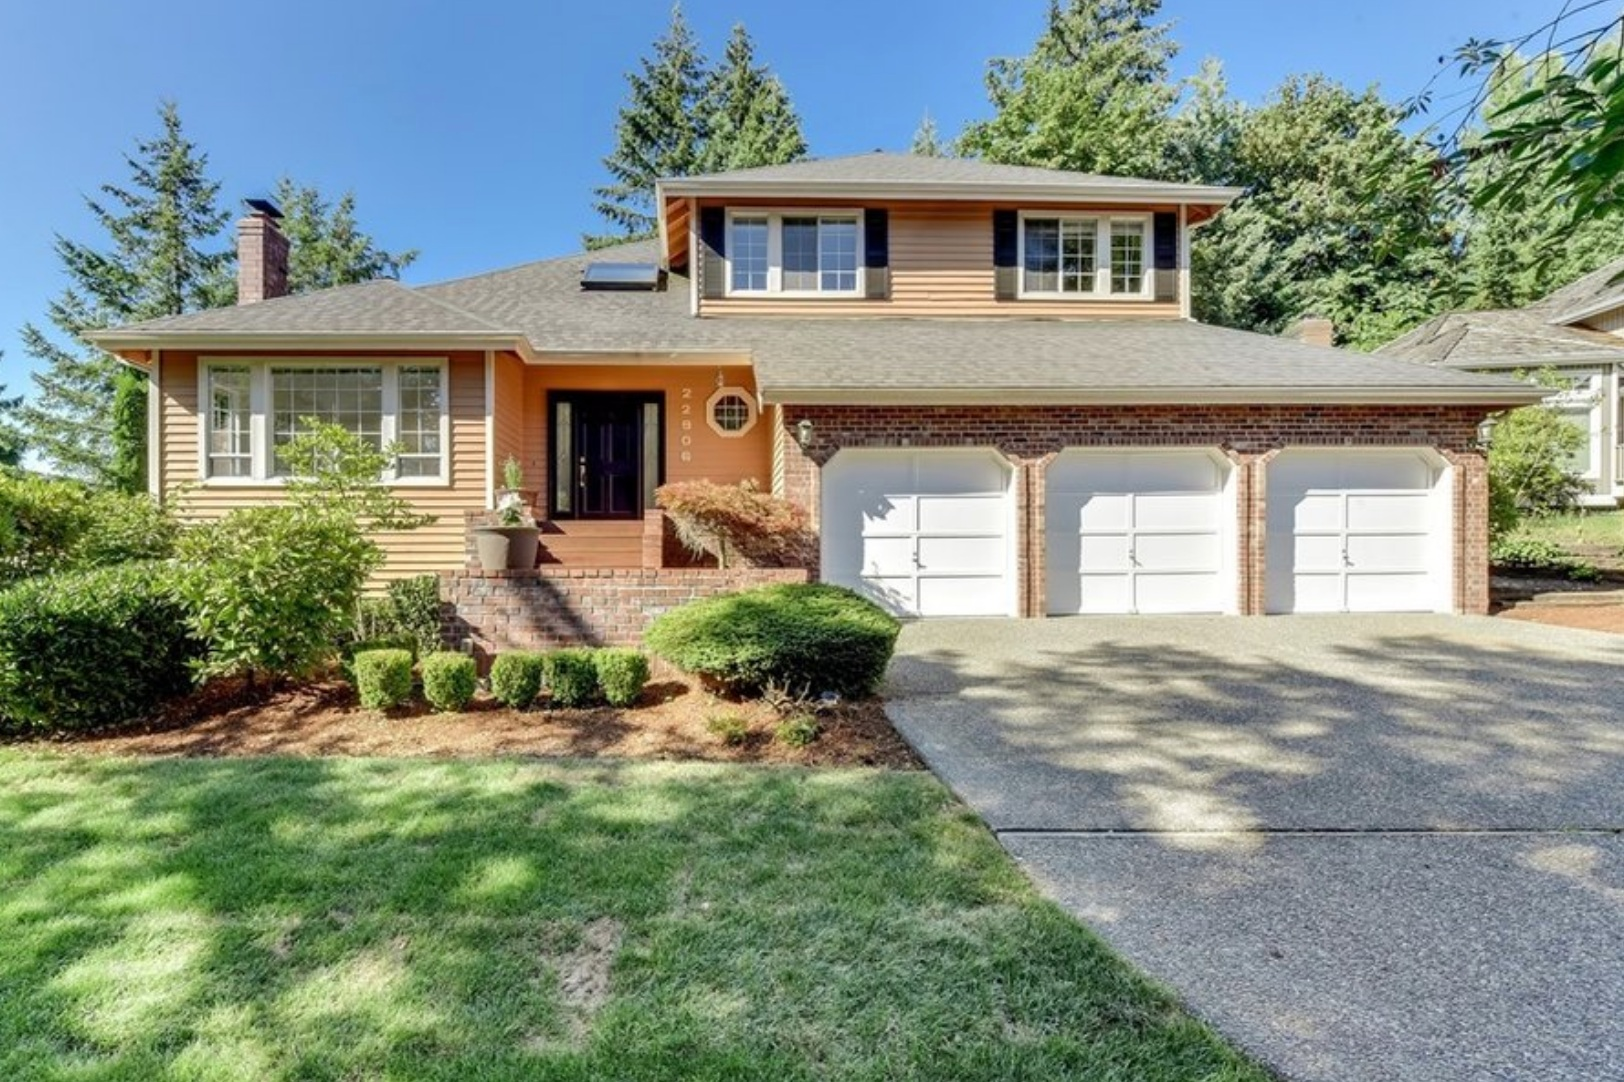 22906 NE 15TH PLACESAMMAMISH, WA 98074 - Sold: $900,000 | 2,370 Sq Ft Home, 8,622 Sq Ft Lot